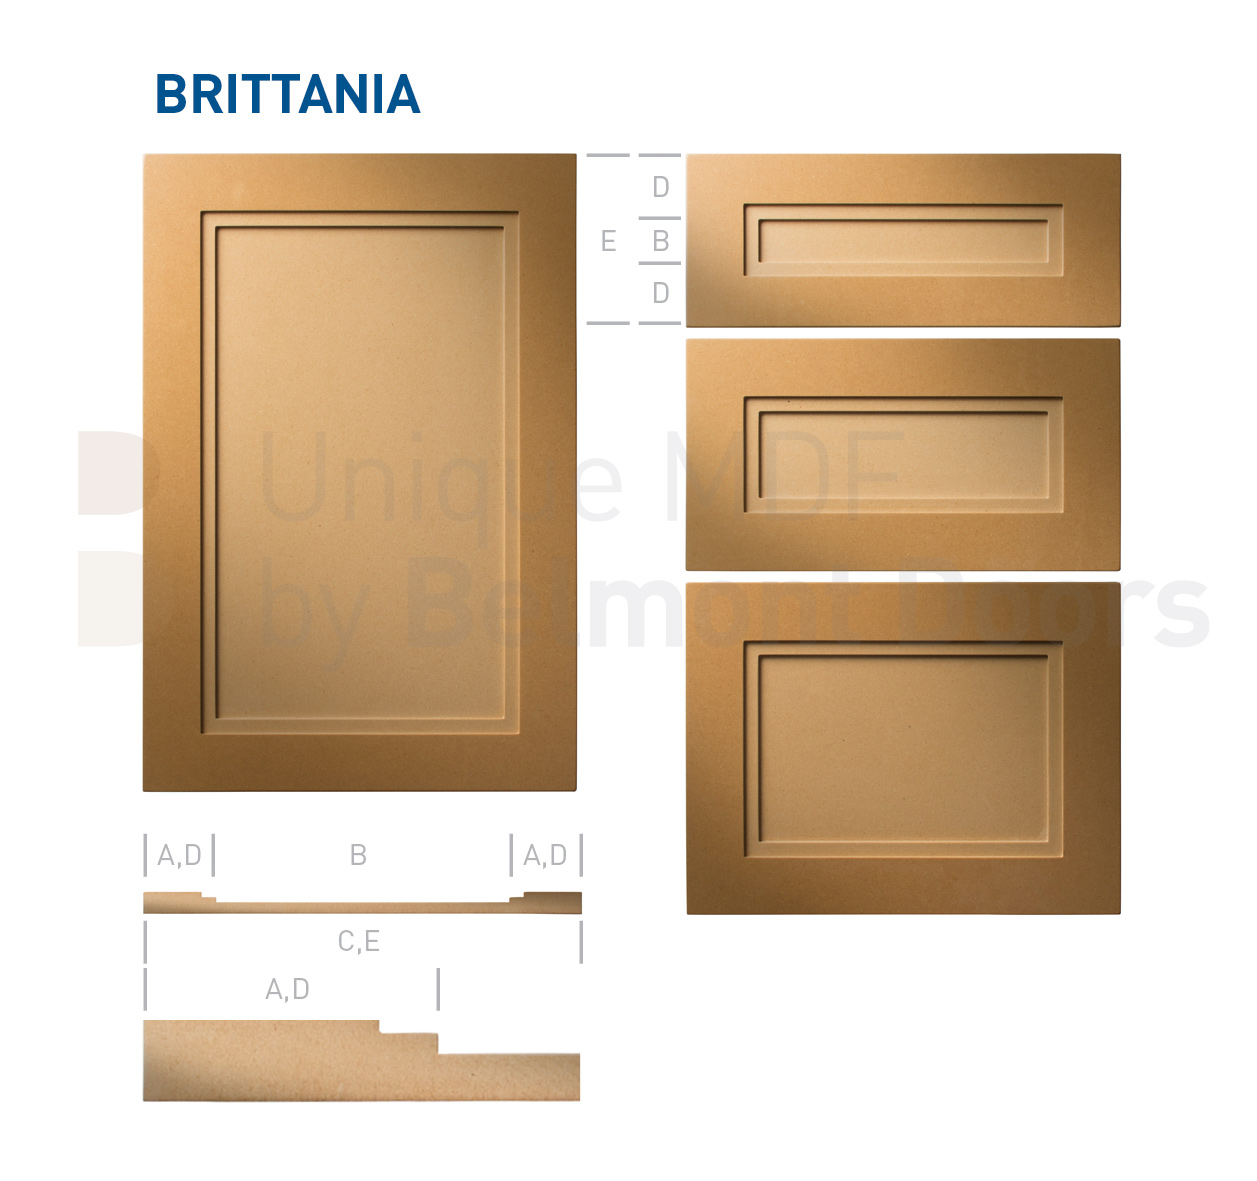 Brittannia-Shaker-MDF-Doors-Flat Panel Kitchen Cabinet Doors Drawers by BelmontDoors.com